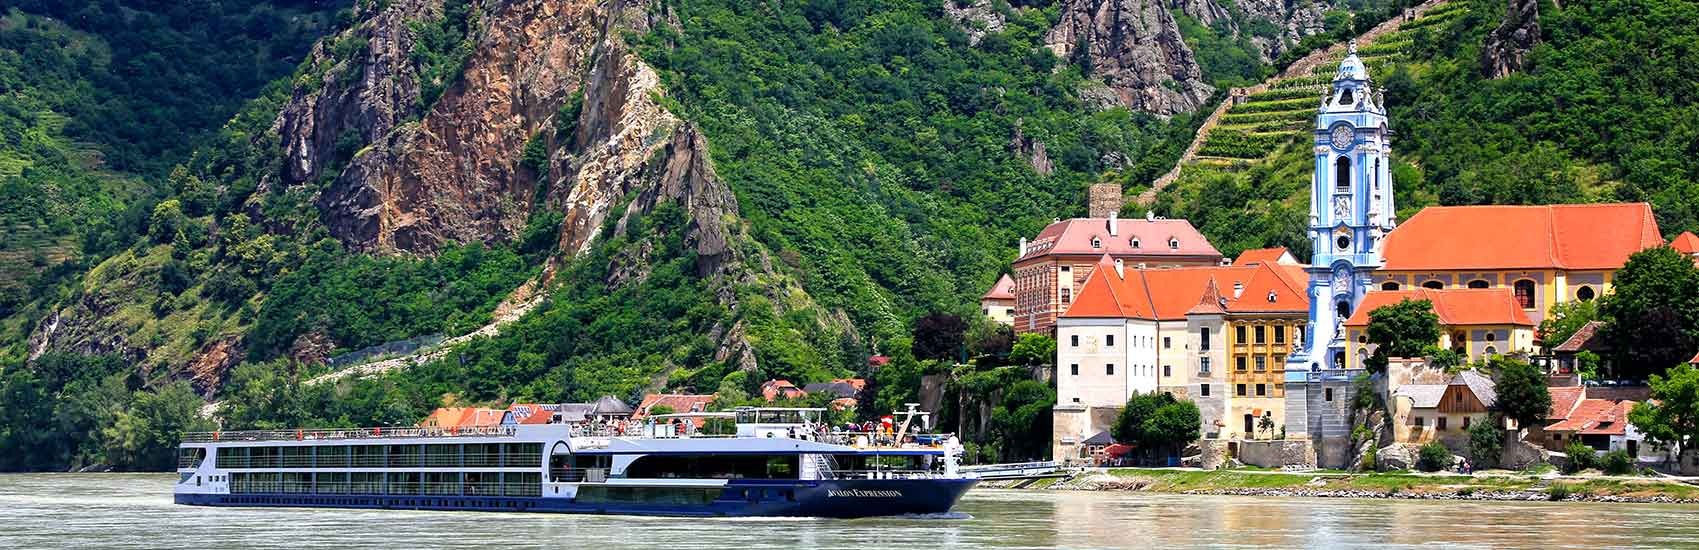 Exclusive Virtuoso Offer with Avalon Waterways 0